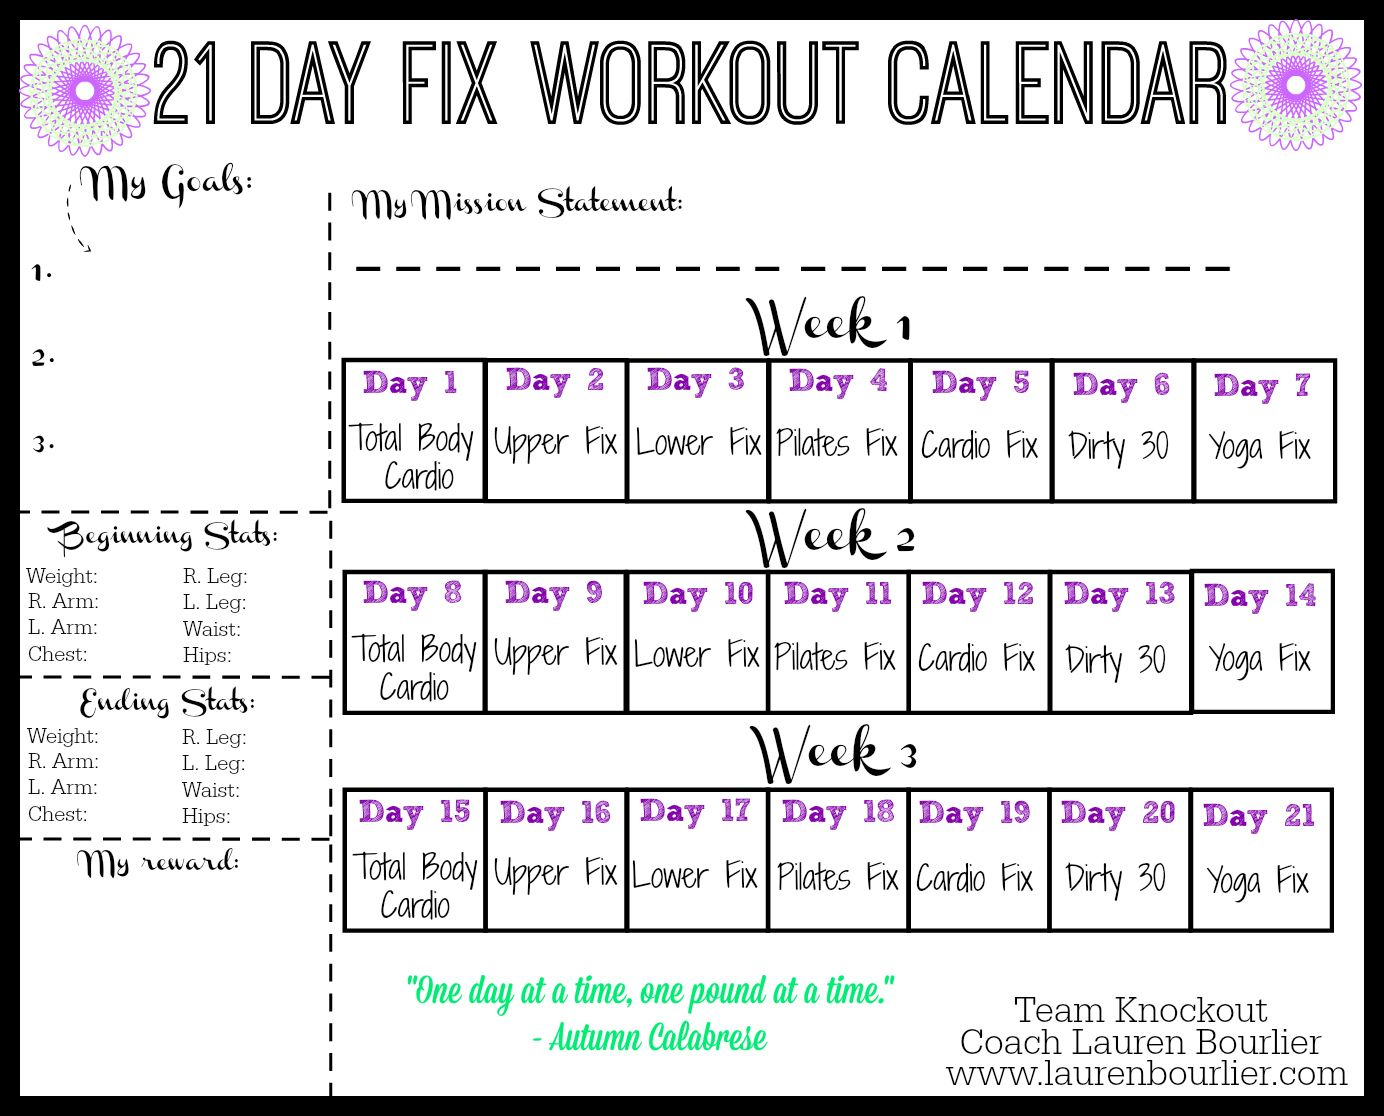 photo regarding 21 Day Fix Workout Schedule Printable identify 21 Working day Repair service exercise routine calendar - Lauren Bourlier Fresh new ingesting